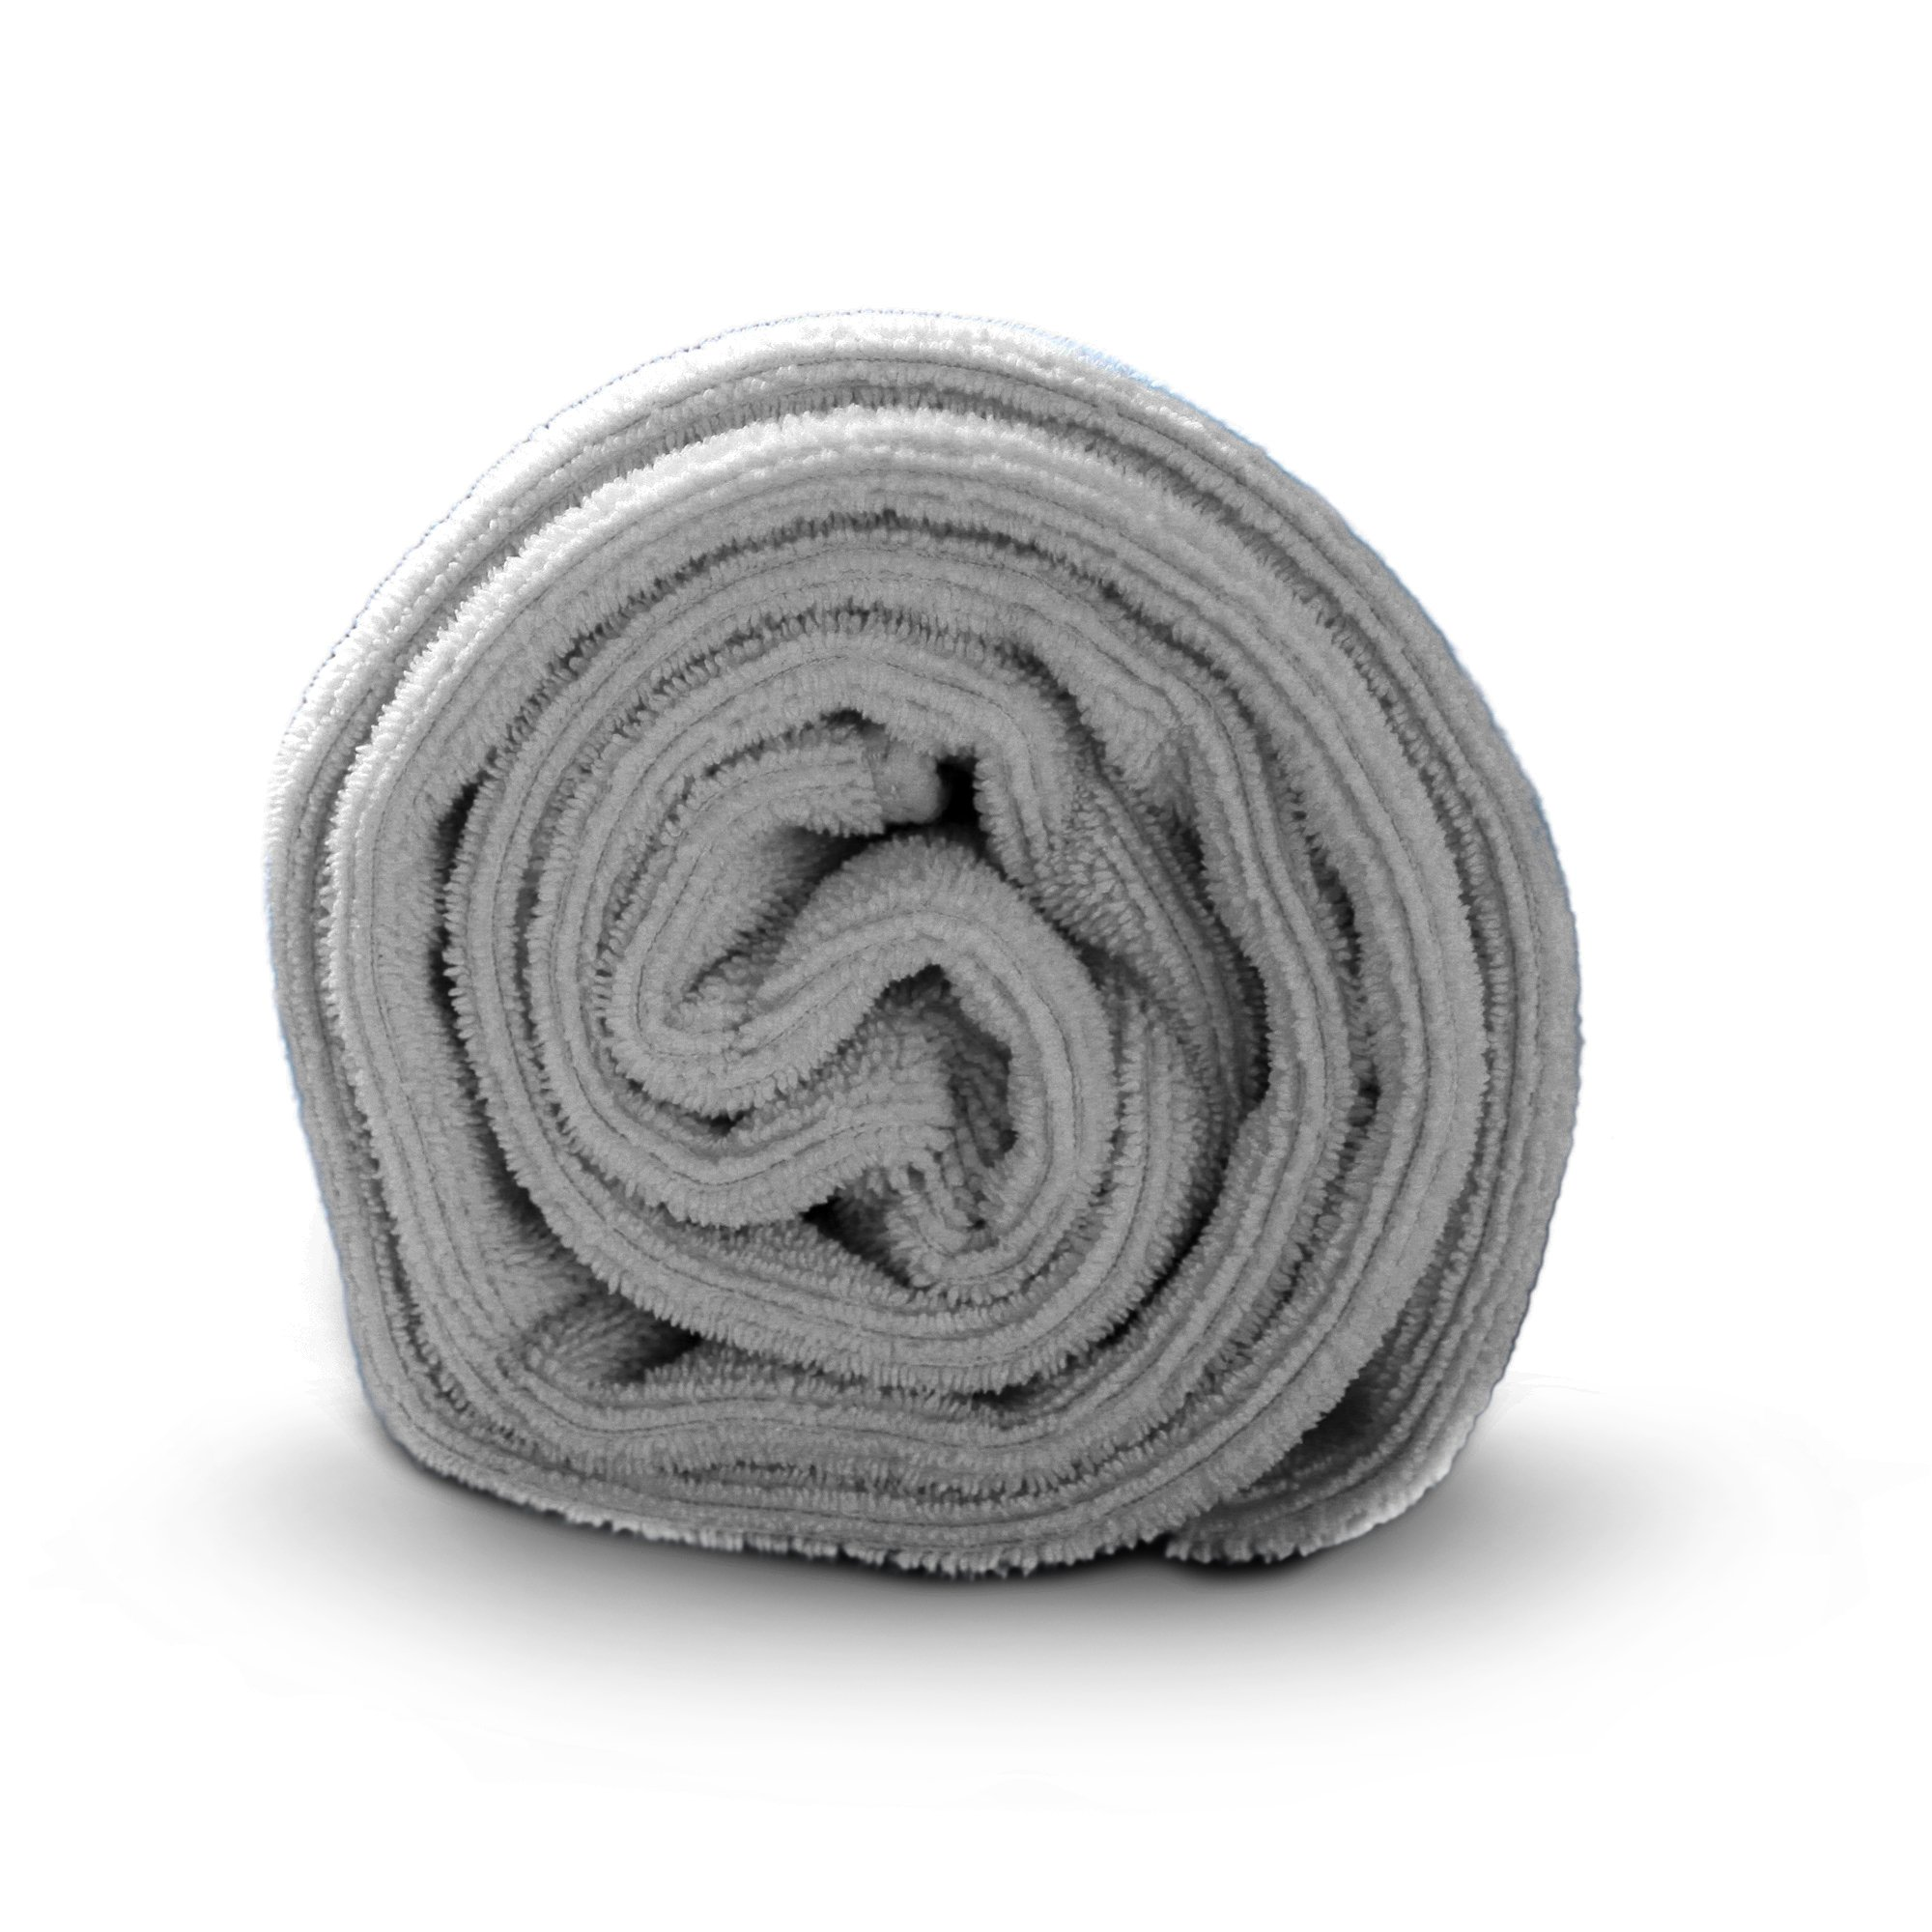 Luxe Beauty Essentials Microfiber Hair Towel For Drying Curly, Long & Thick Hair- Large 20 x 40 Grey by Luxe Beauty Essentials (Image #6)